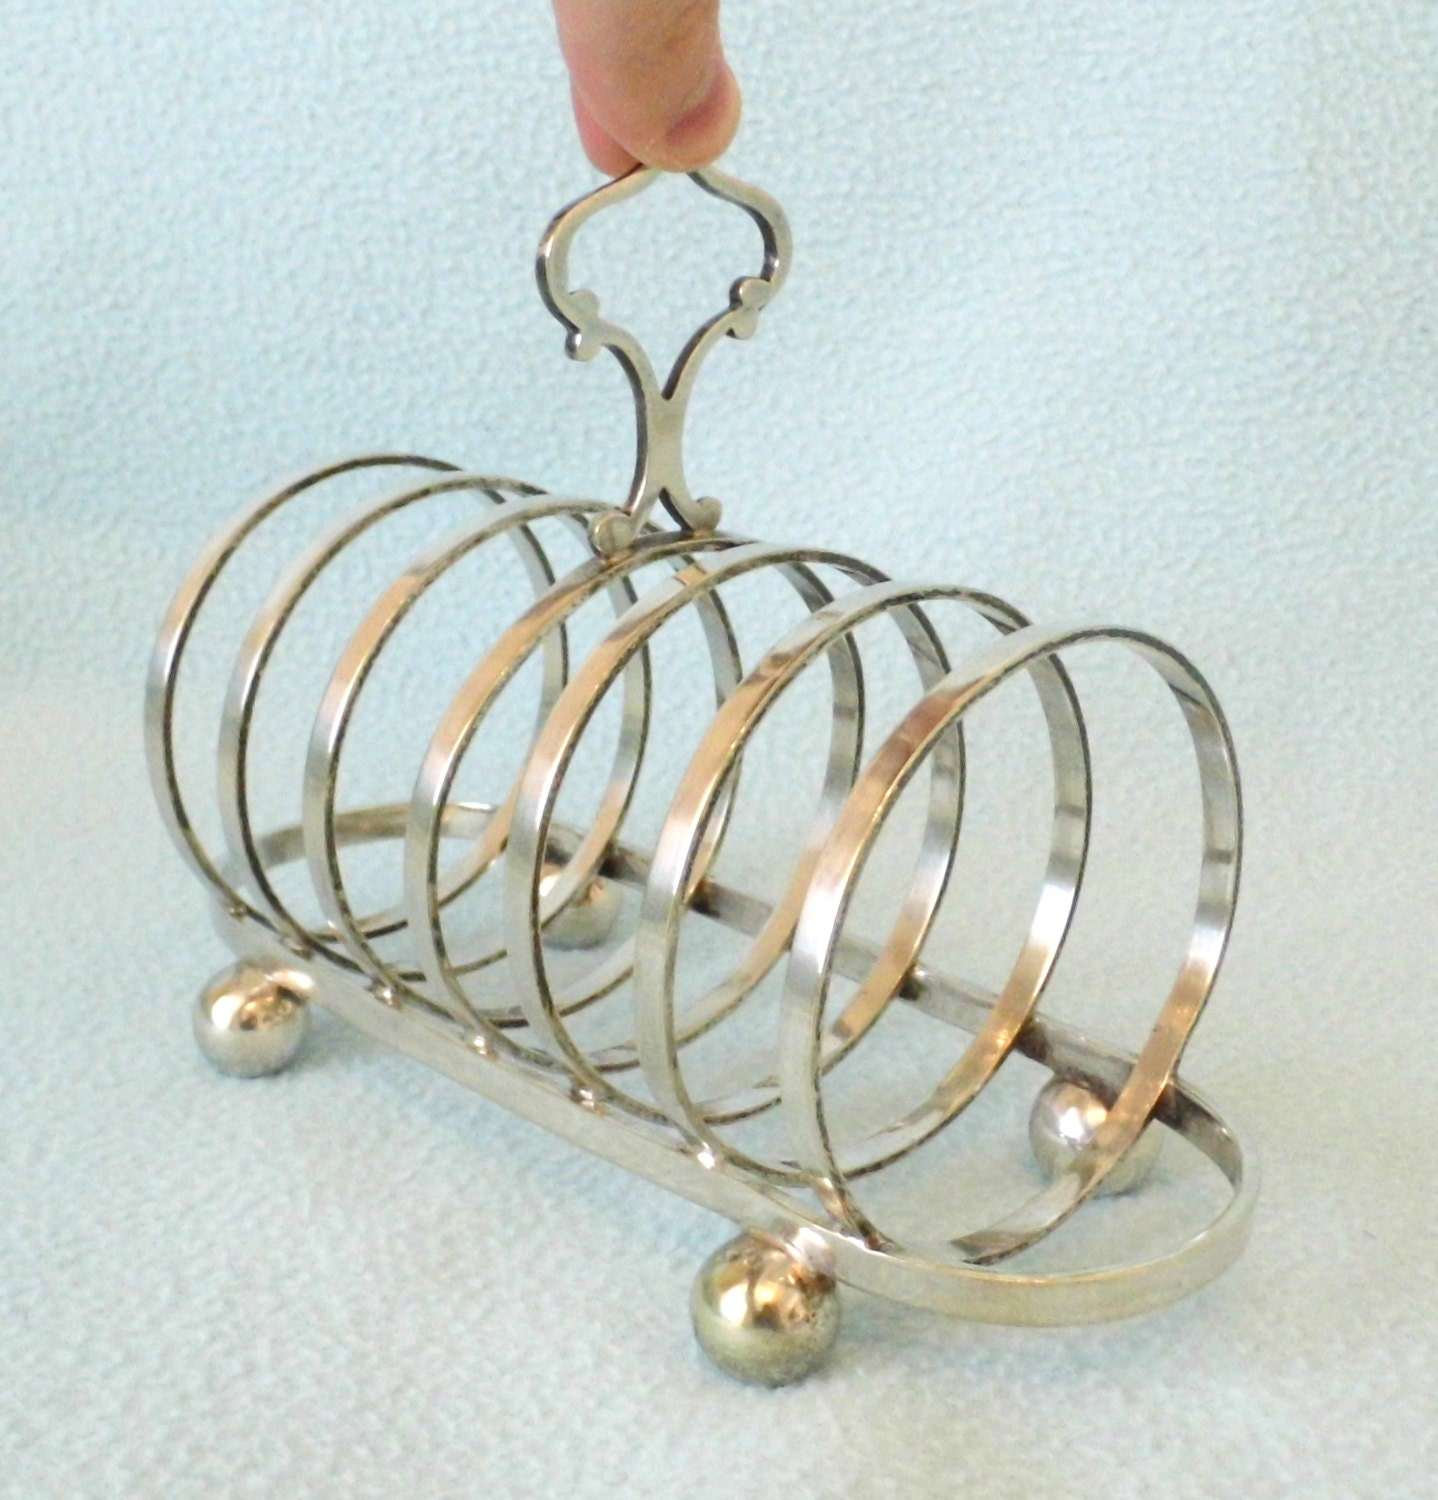 Antique Silver Plated Toast Rack, Ball Feet, Rounded Circular Slots, Lovely Elegant Looking Piece, Victorian - AToasttothePast